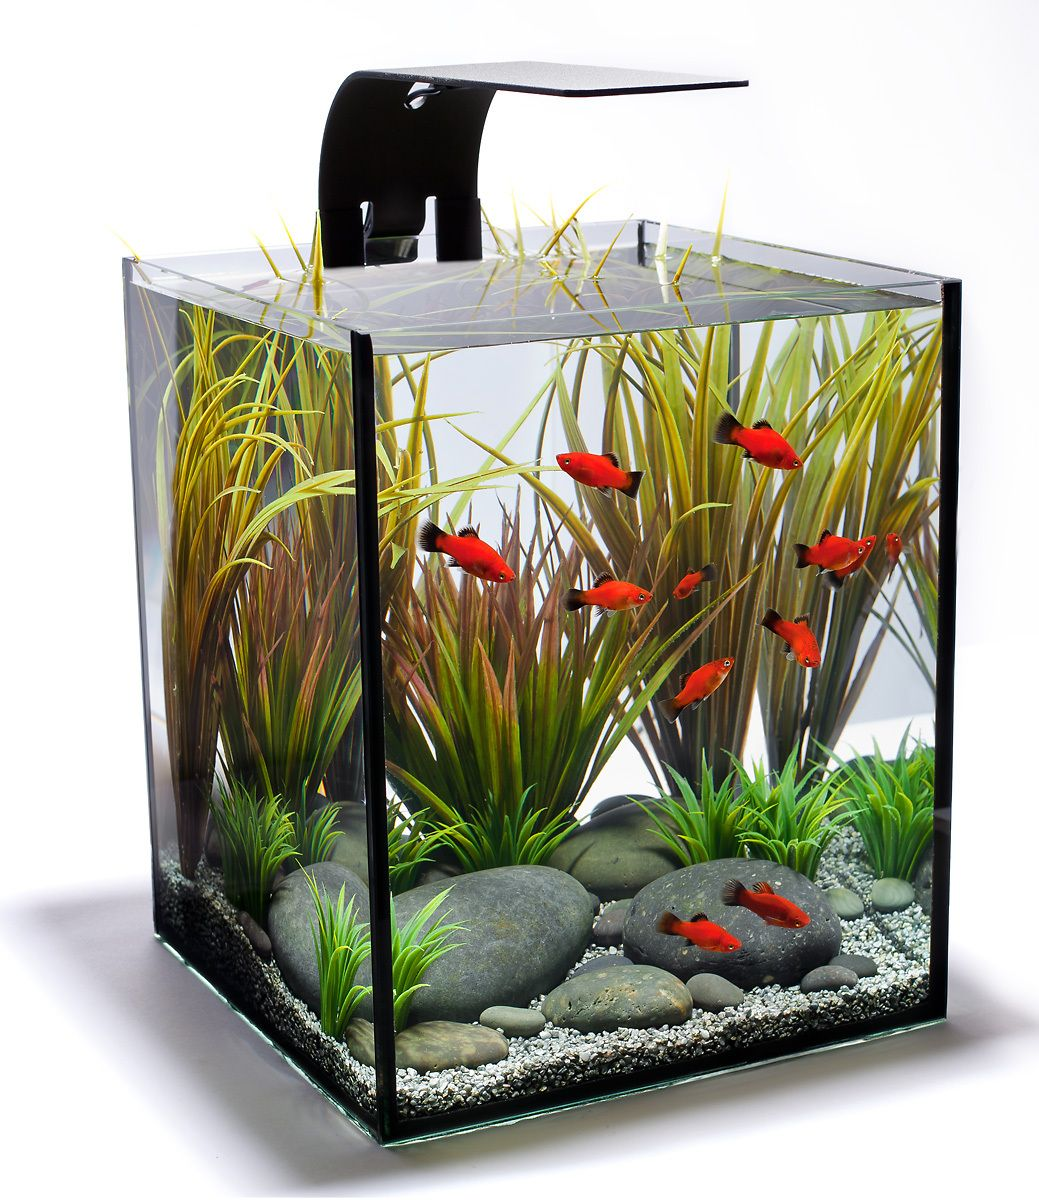 An Aquascape Philosophy for a Desktop Aquarium